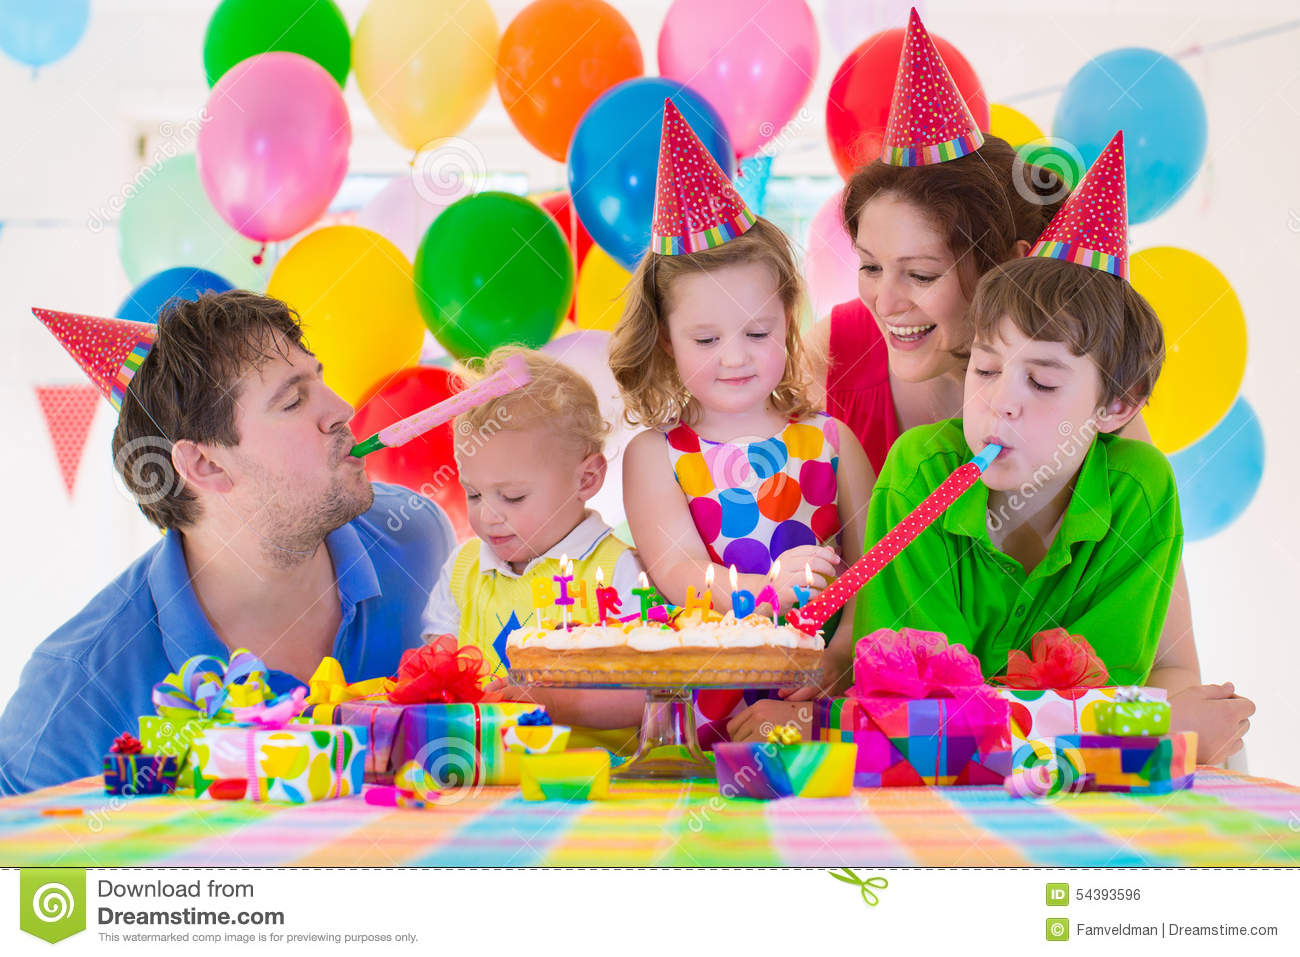 picture of birthday party celebration ; young-family-celebrating-birthday-party-happy-kids-parents-three-children-celebrate-together-child-baloon-decoration-cake-54393596